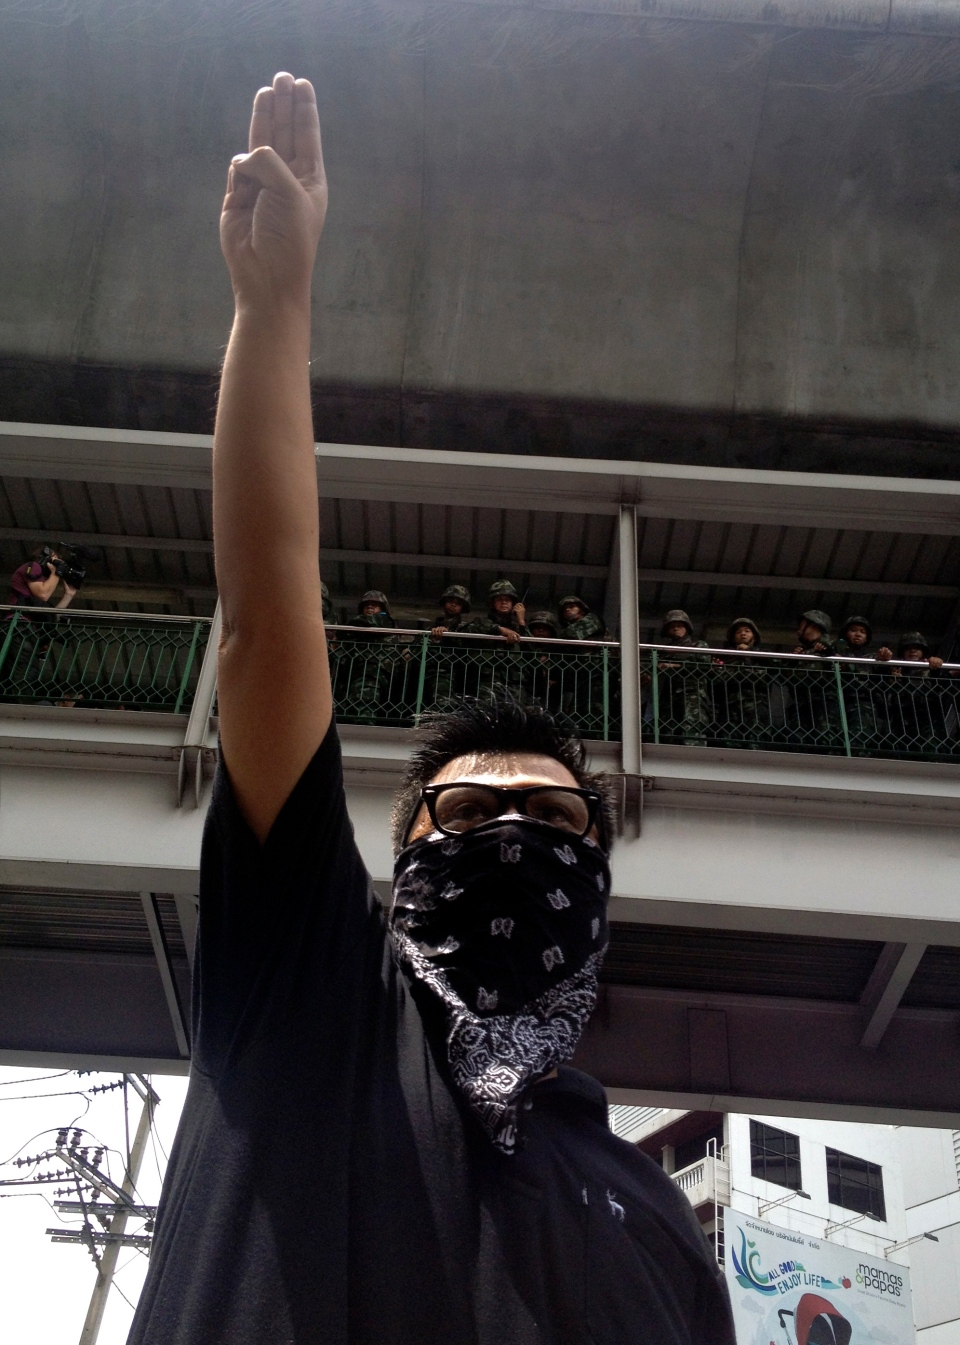 An anti-coup protester gives a three-finger salute as soldiers keep eyes on him from an elevated walkway near a rally site in central Bangkok, Thailand, Sunday, June 1, 2014. (AP / Thanyarat Doksone)